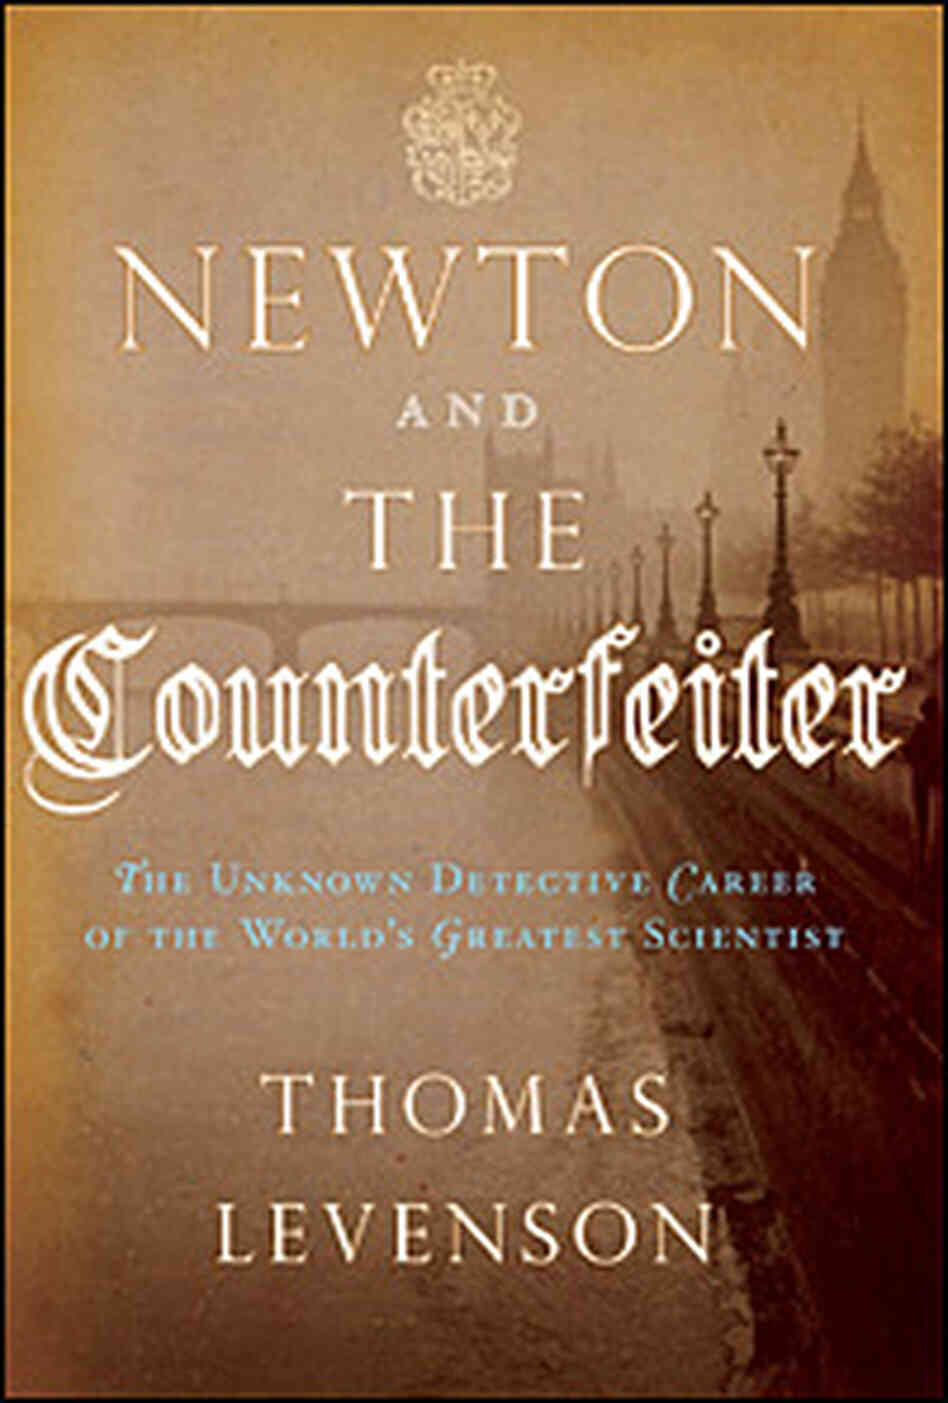 'Newton And The Counterfeiter' Cover